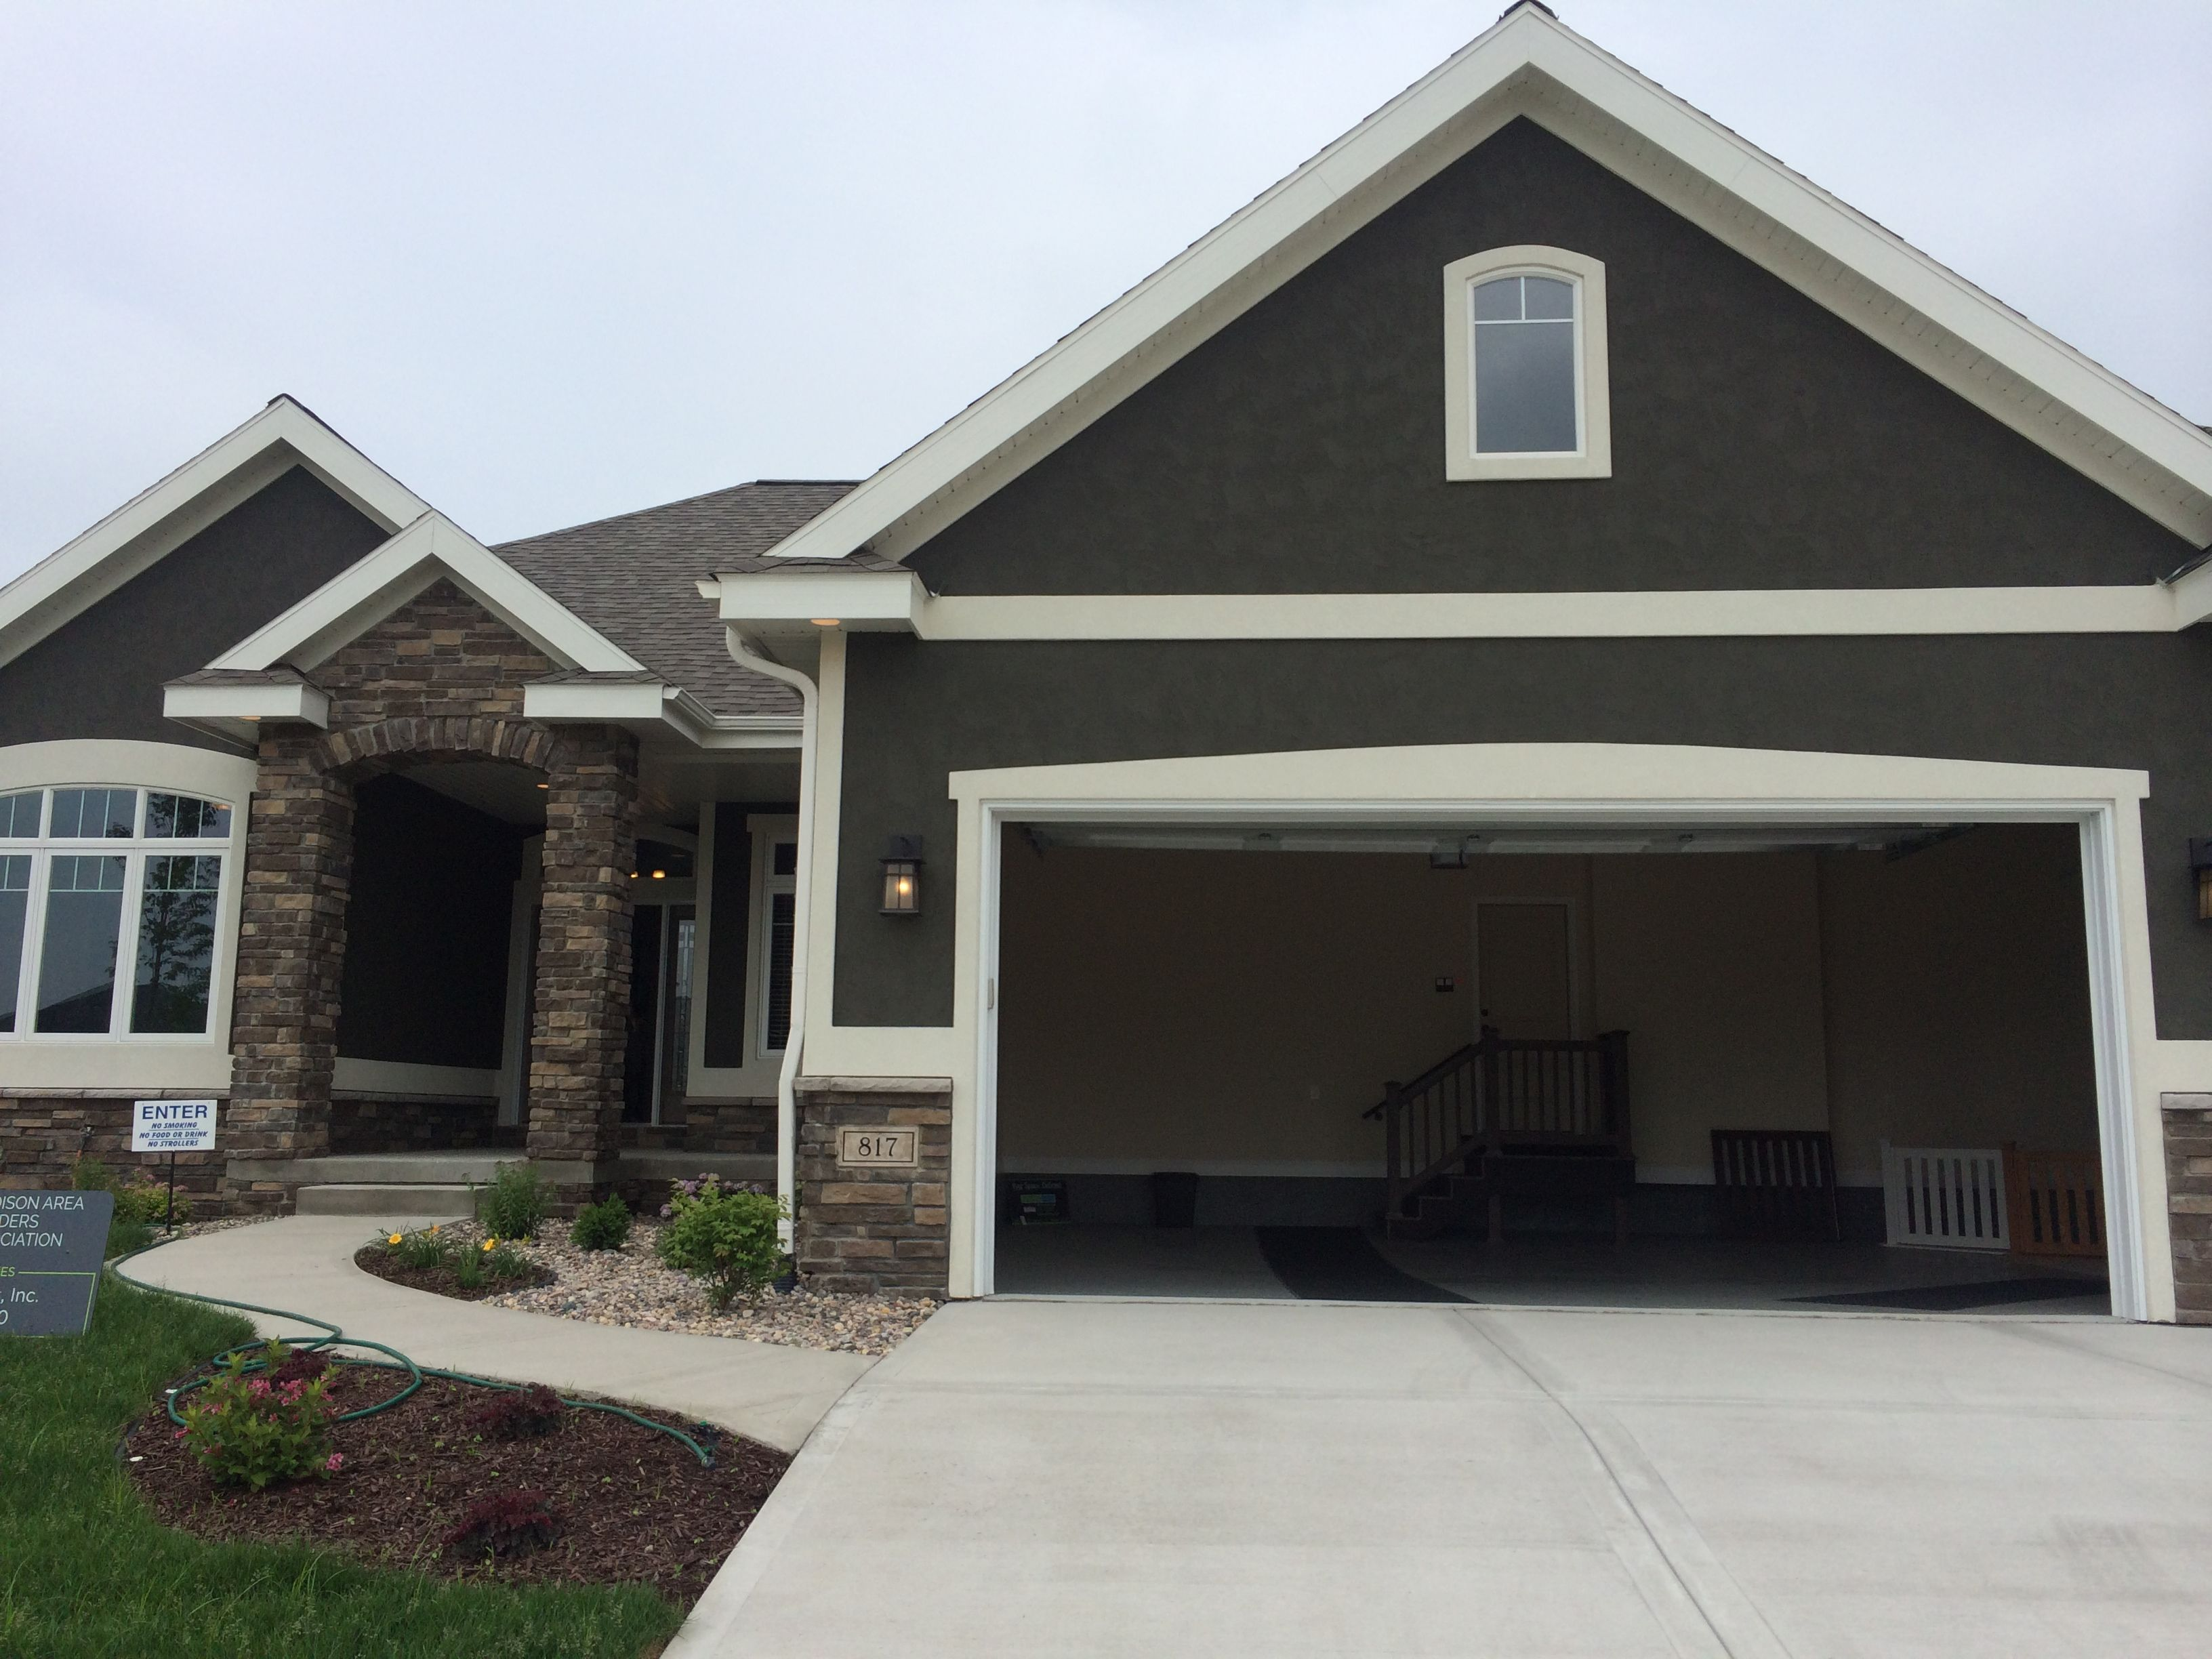 Dark grey stucco exterior white trim nice stone entrance - Exterior house paint colors 2014 ...